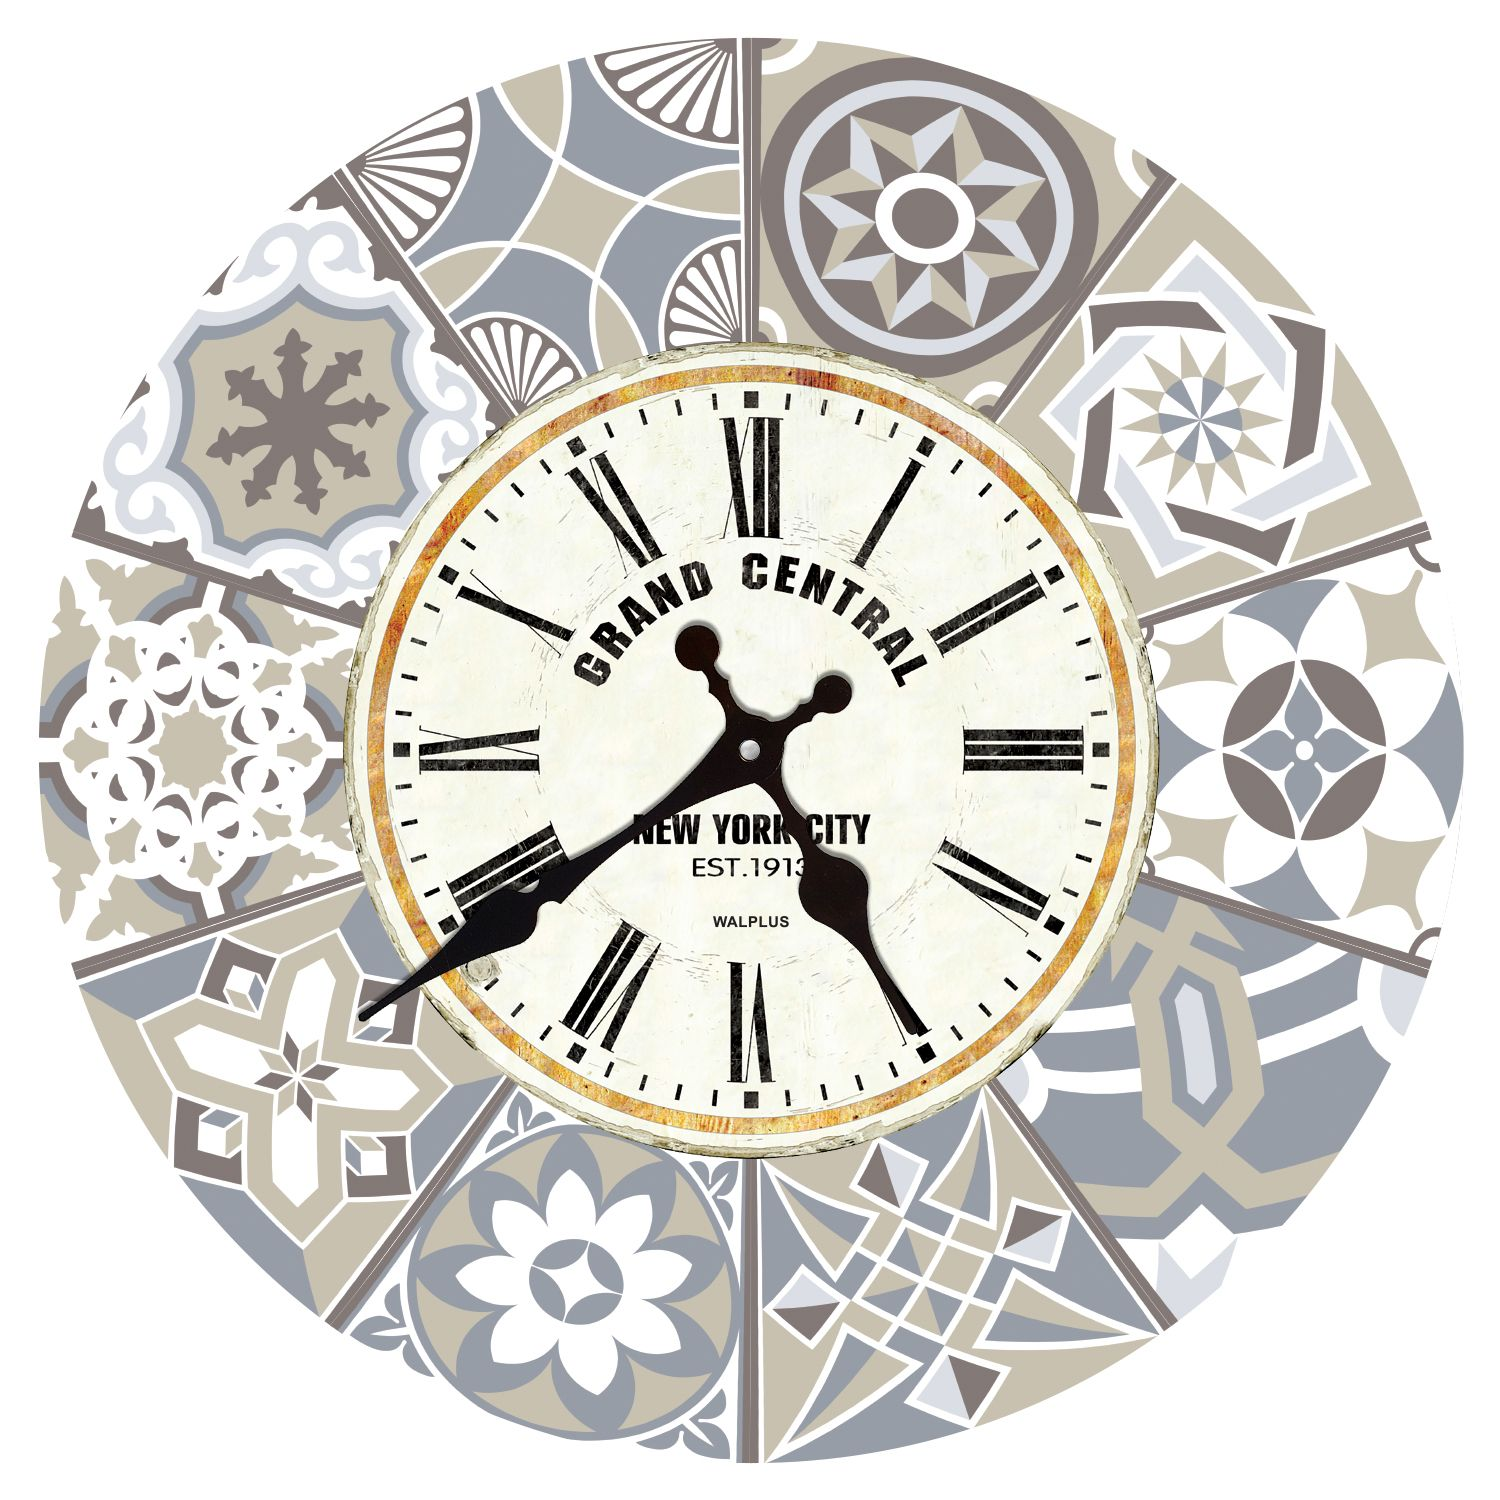 Limestone Spanish Tiles Wall Clock, DIY Art, Kitchen Decorations, Bedroom, Home Design, House Décor, Living room ideas